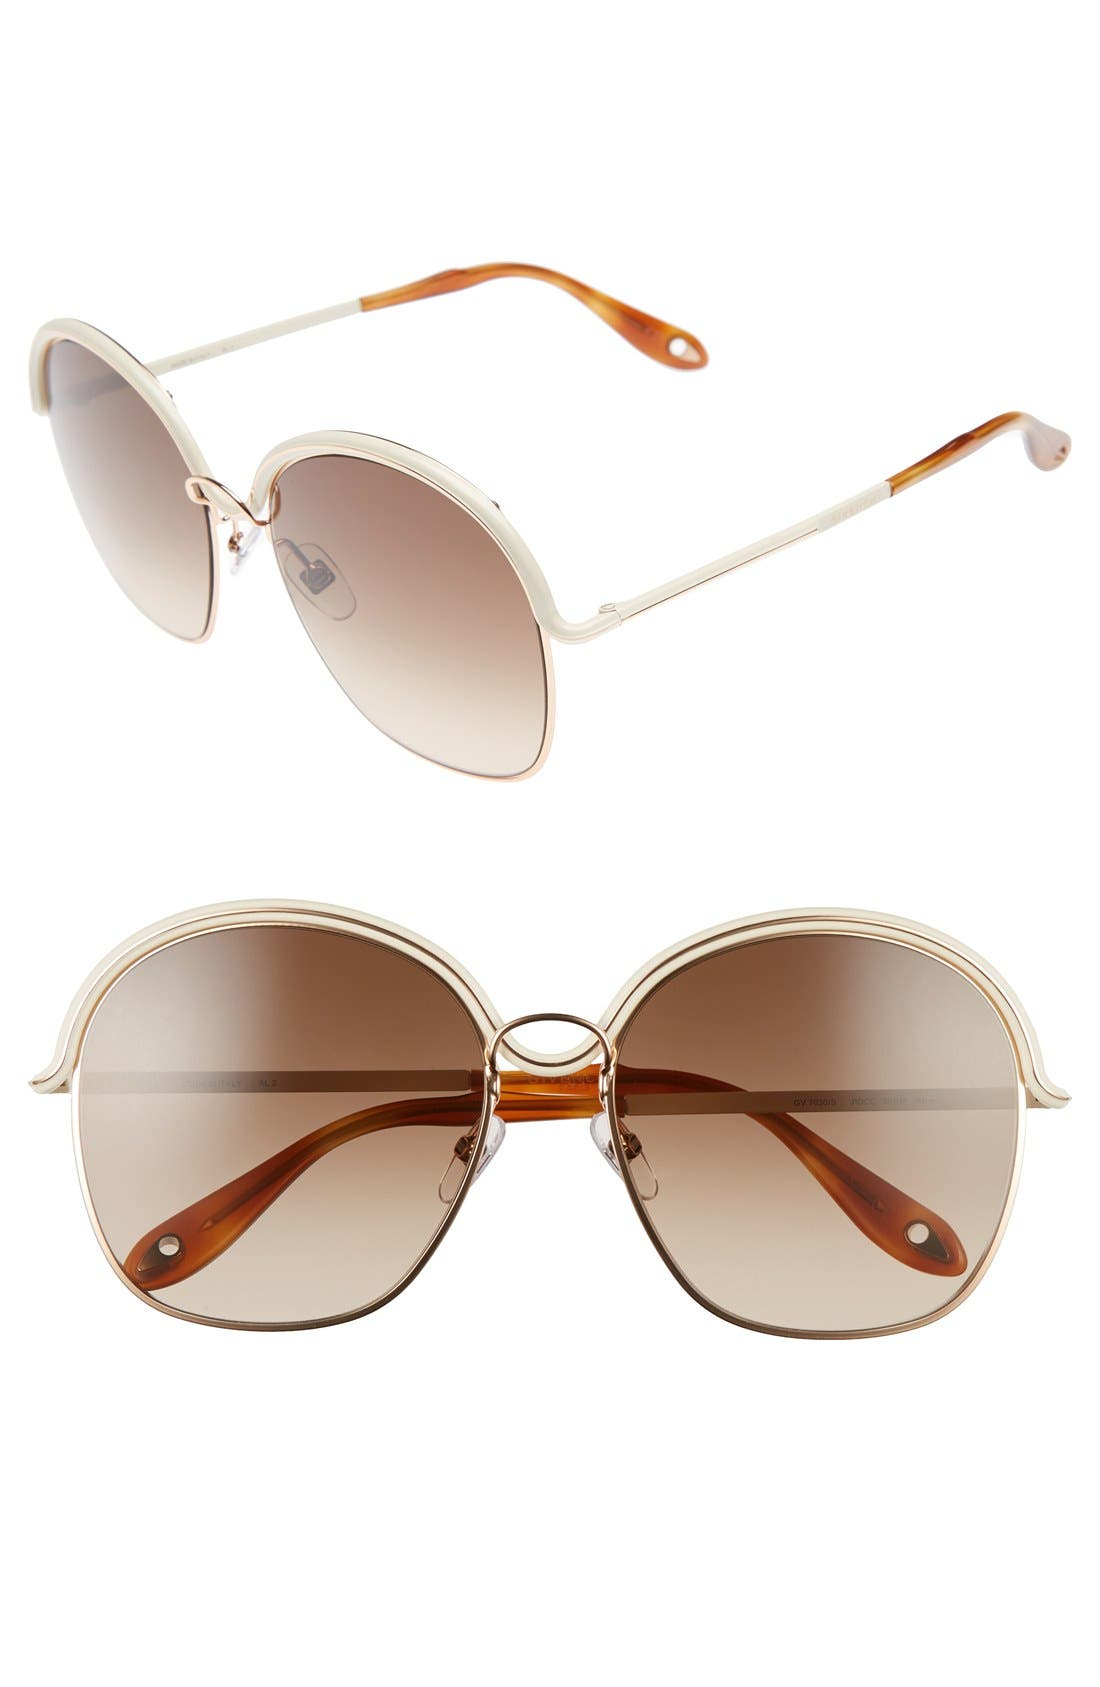 7030/S 58mm Oversized Sunglasses,                         Main,                         color, Gold/ Beige